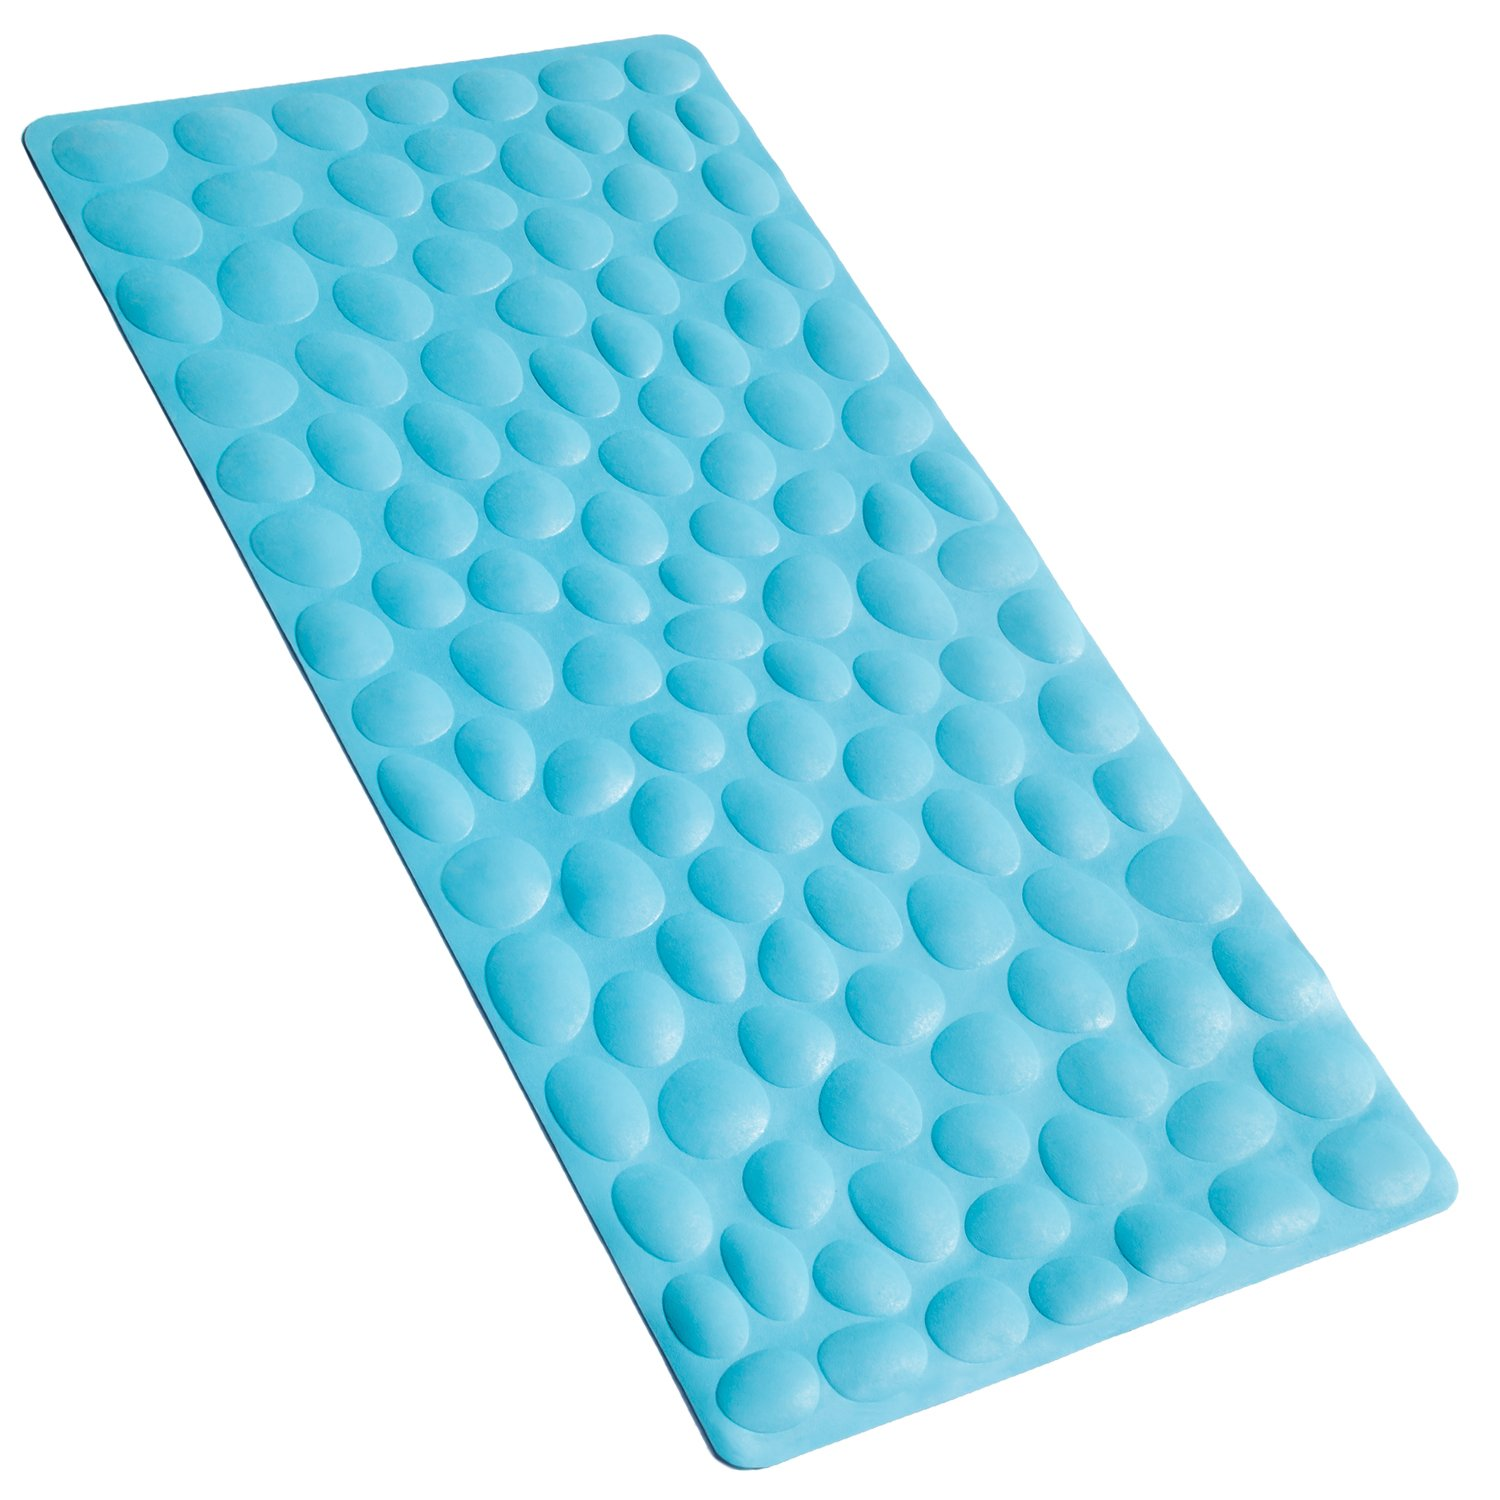 Amazon.com: OTHWAY Non-slip Bathtub Mat Soft Rubber Bathroom Bathmat ...